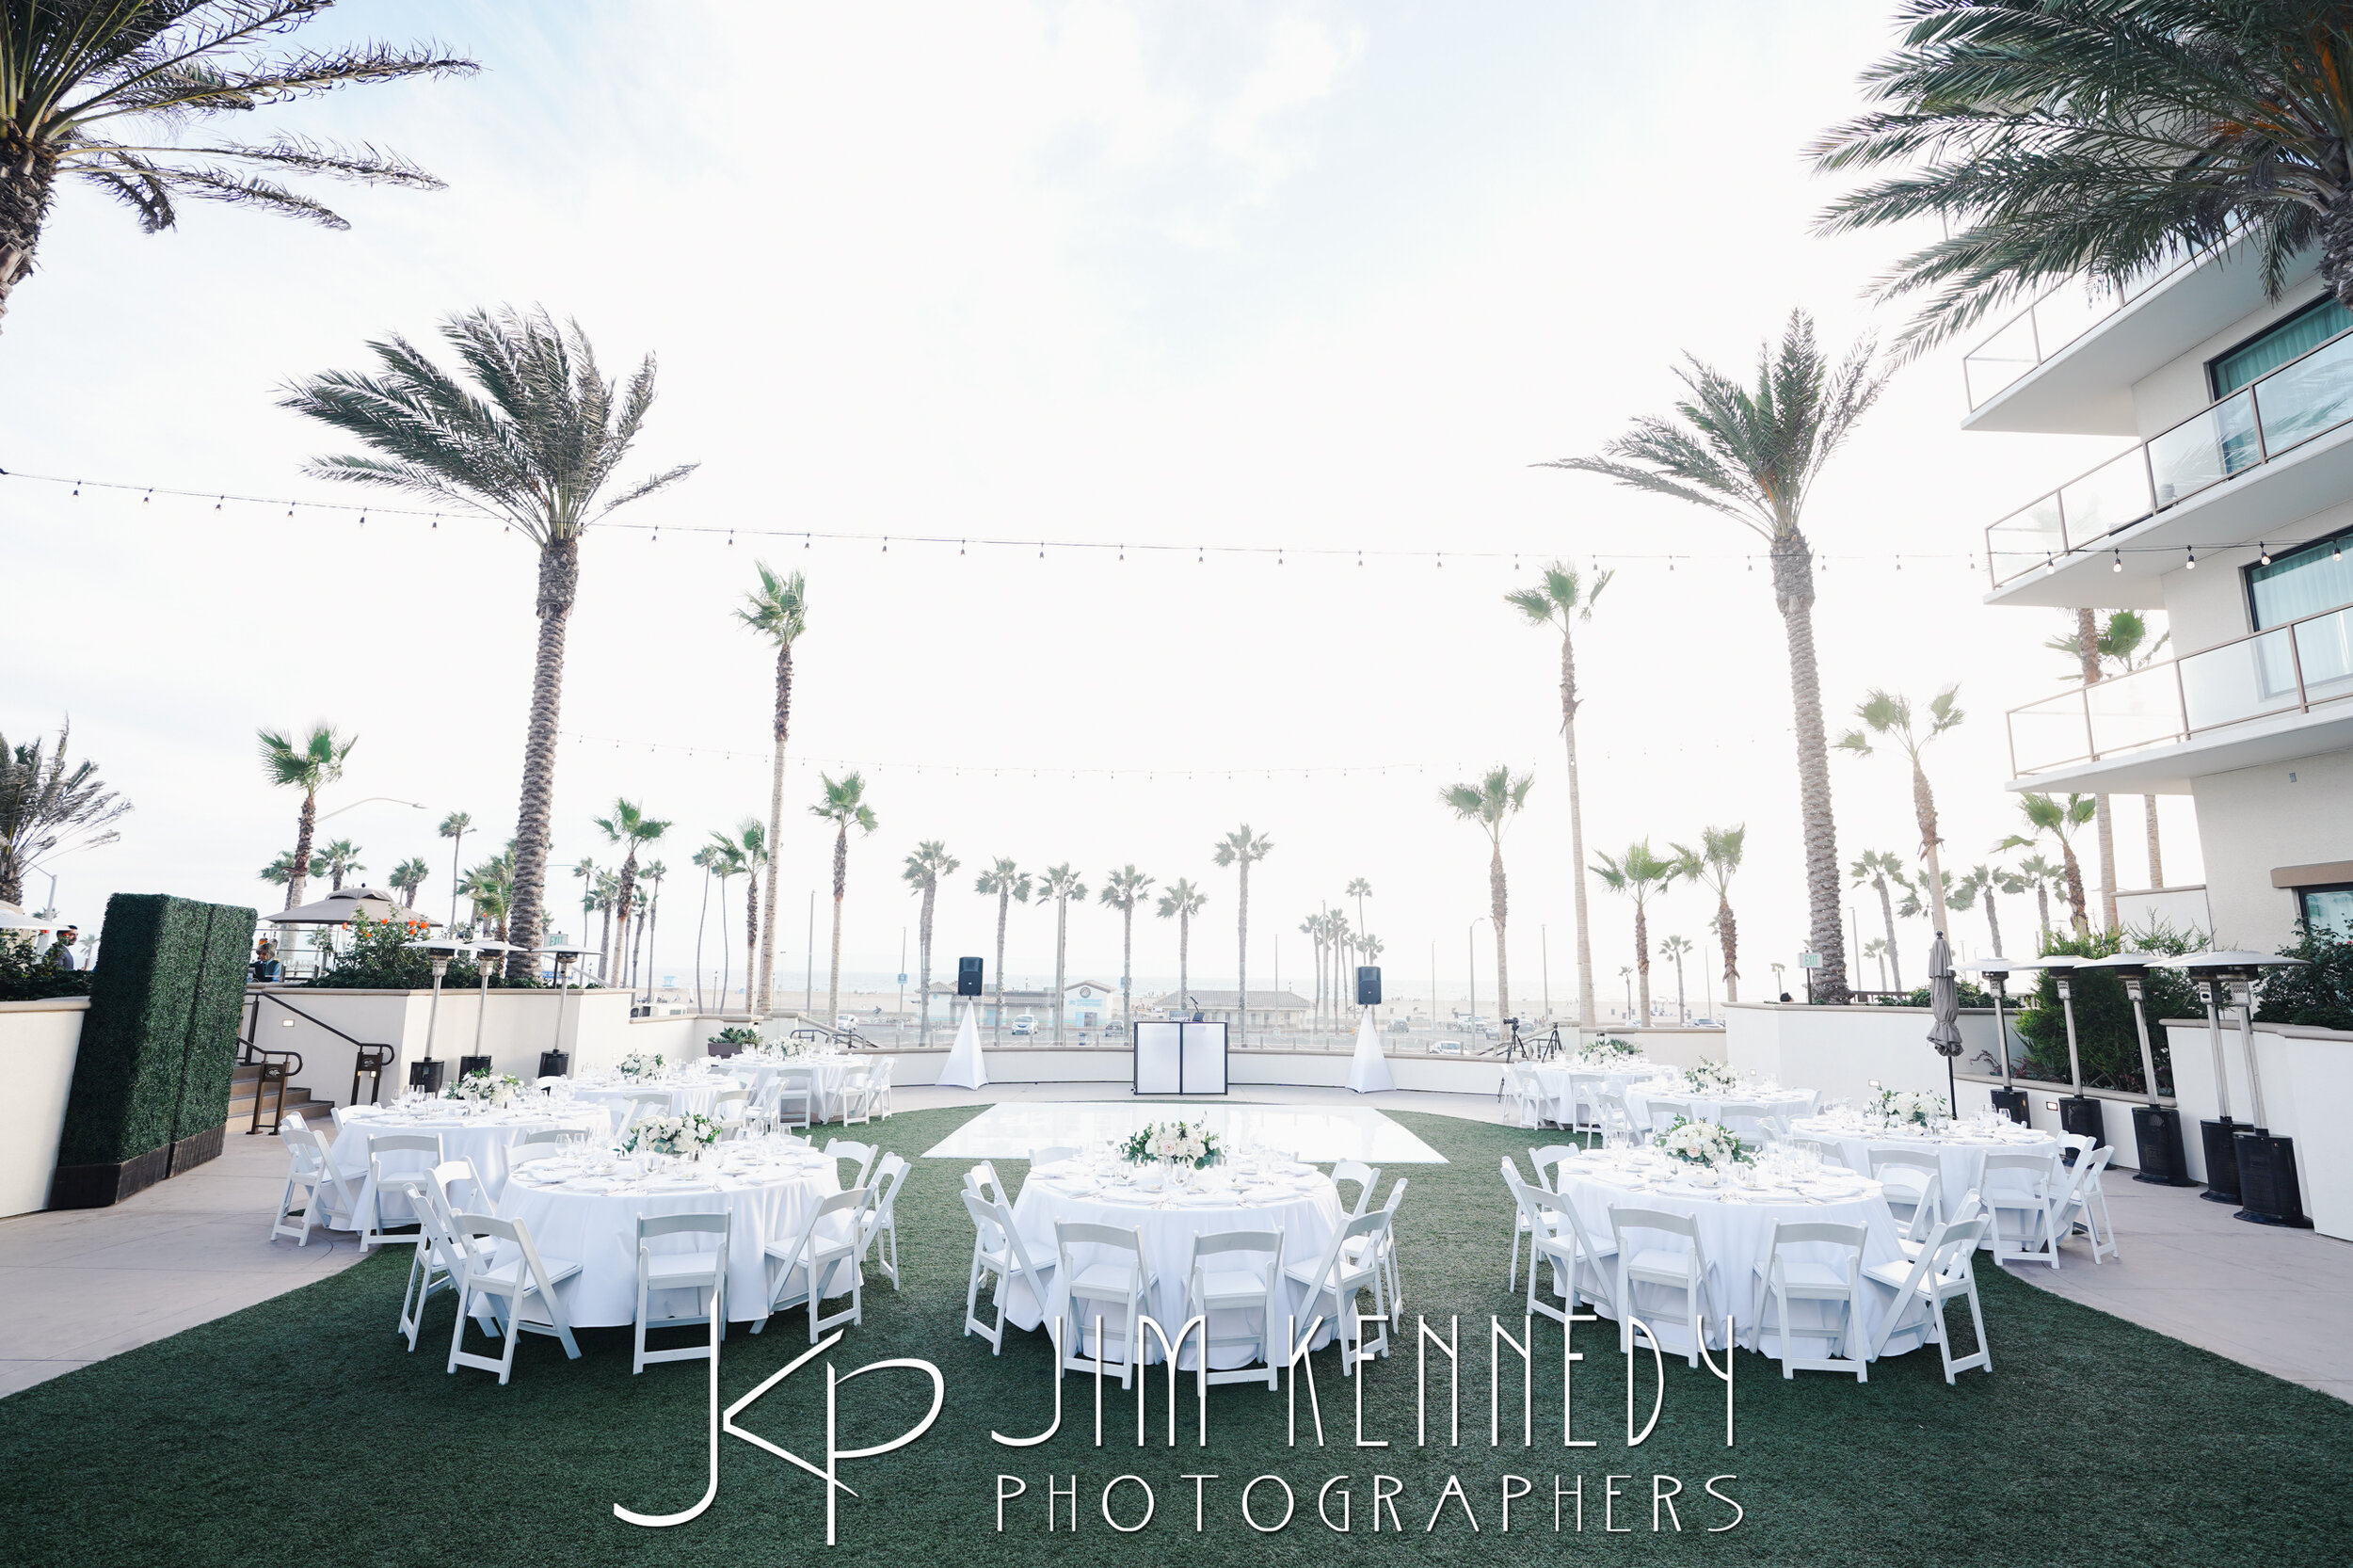 waterfront-hilton-wedding-jim-kennedy-photographers_0170.JPG